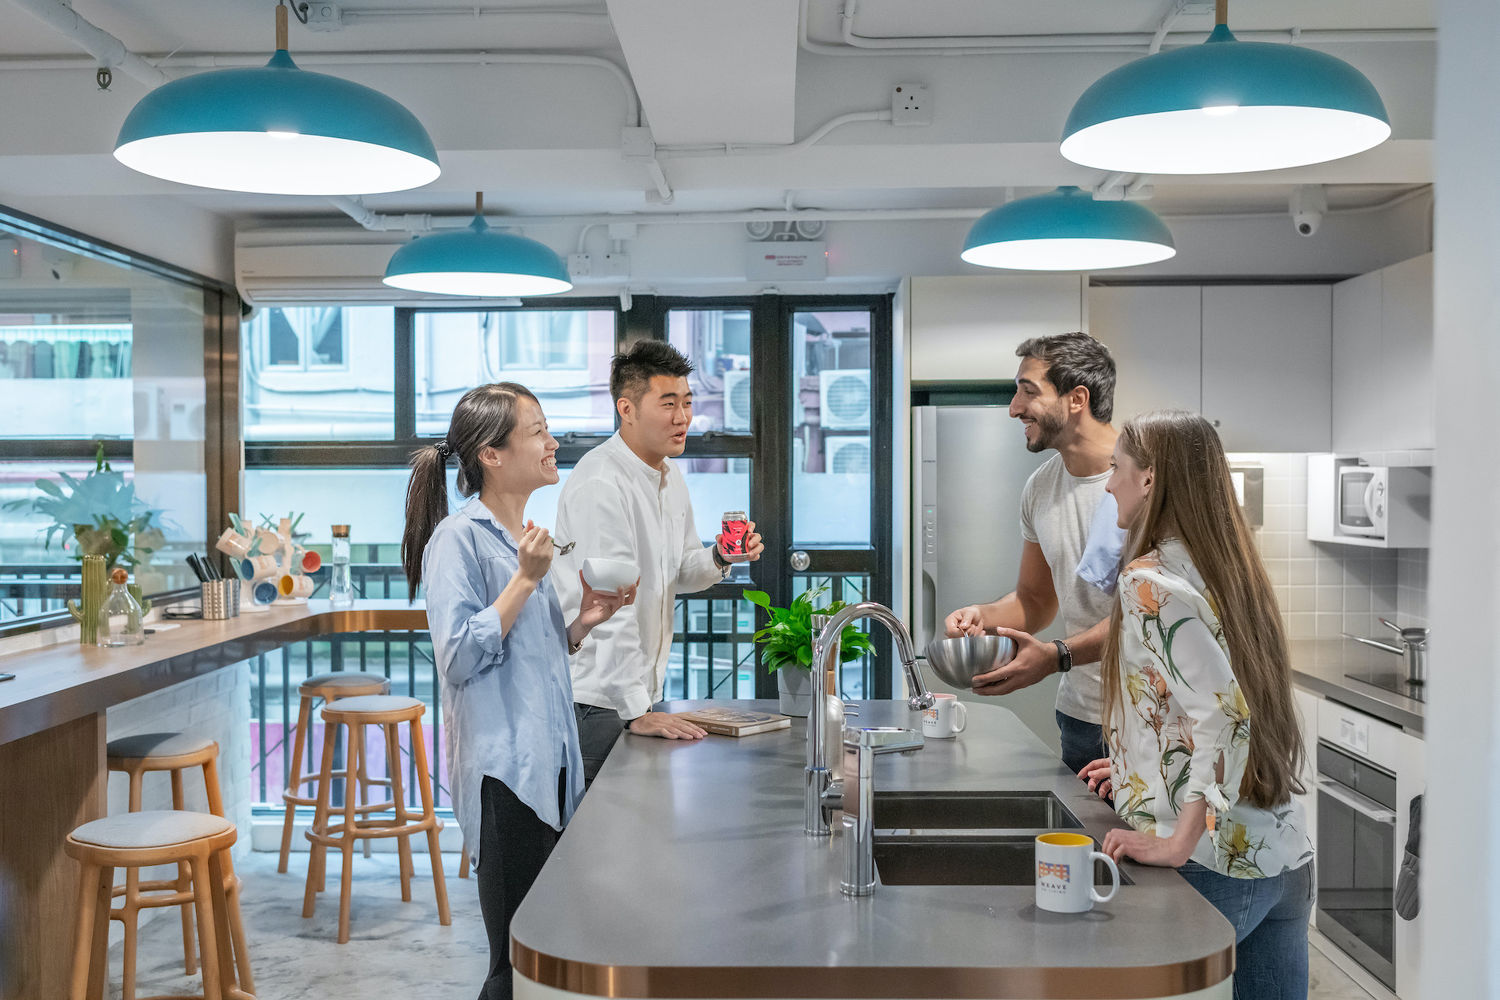 EDGEPROP SINGAPORE -  The kitchen and dining area is one of the shared amenities among residents at Weave on Baker (Photo: Weave Co-Living)